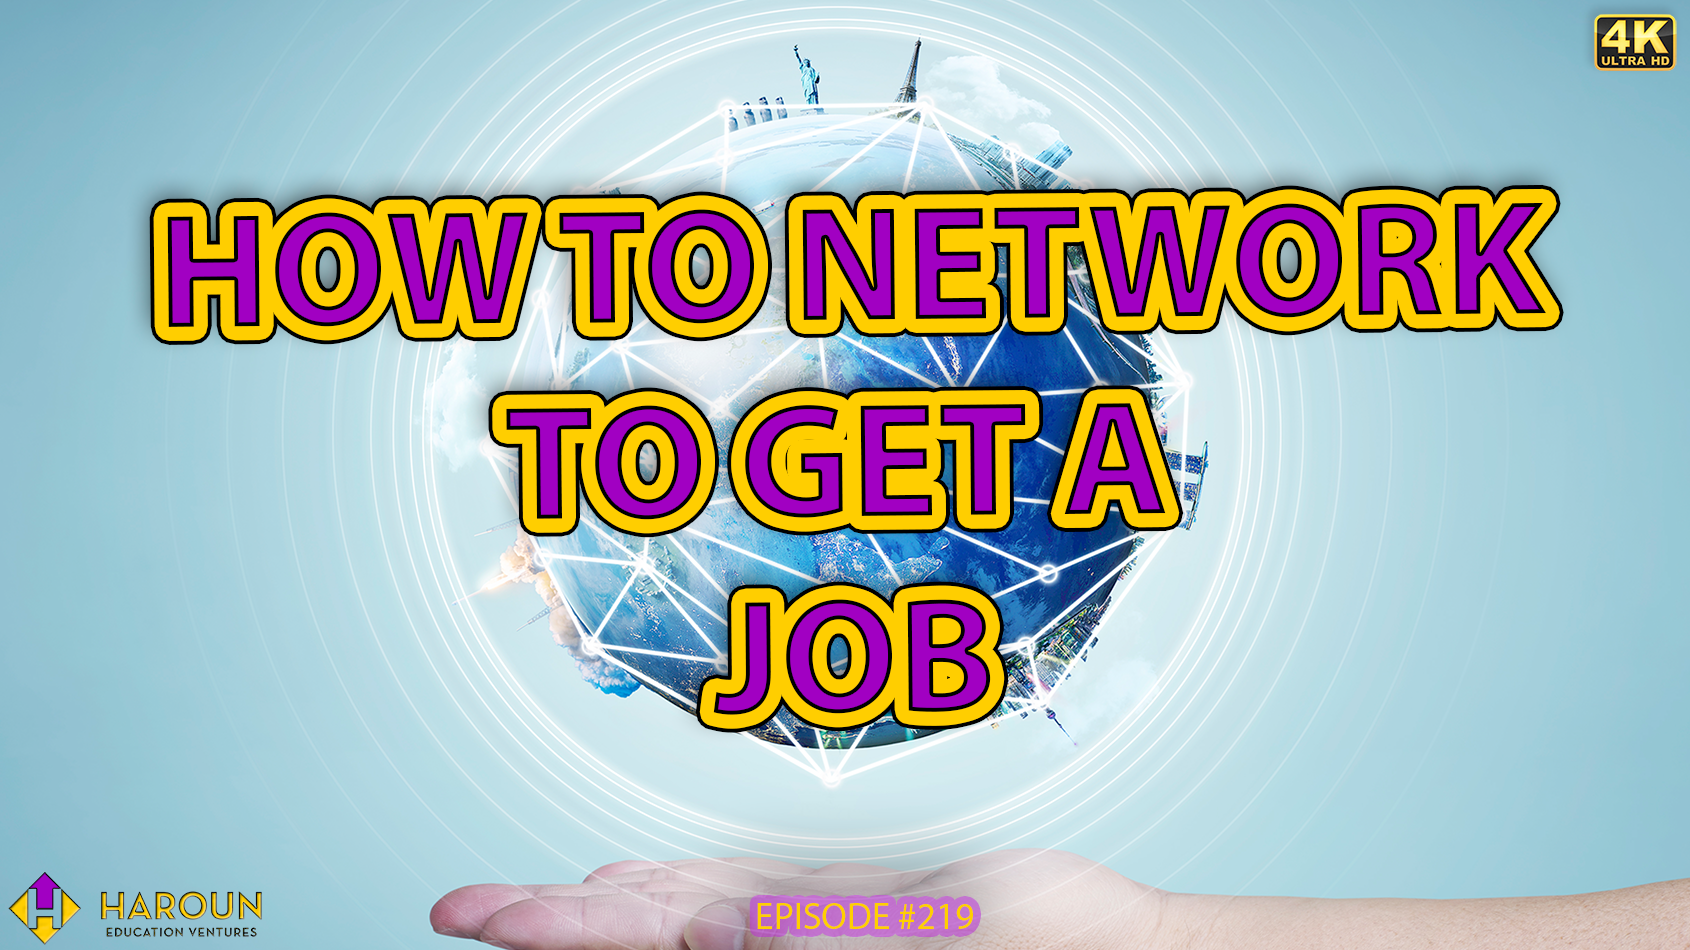 DAY_219_3_6_19_Networking_to_Get_a_Job.png